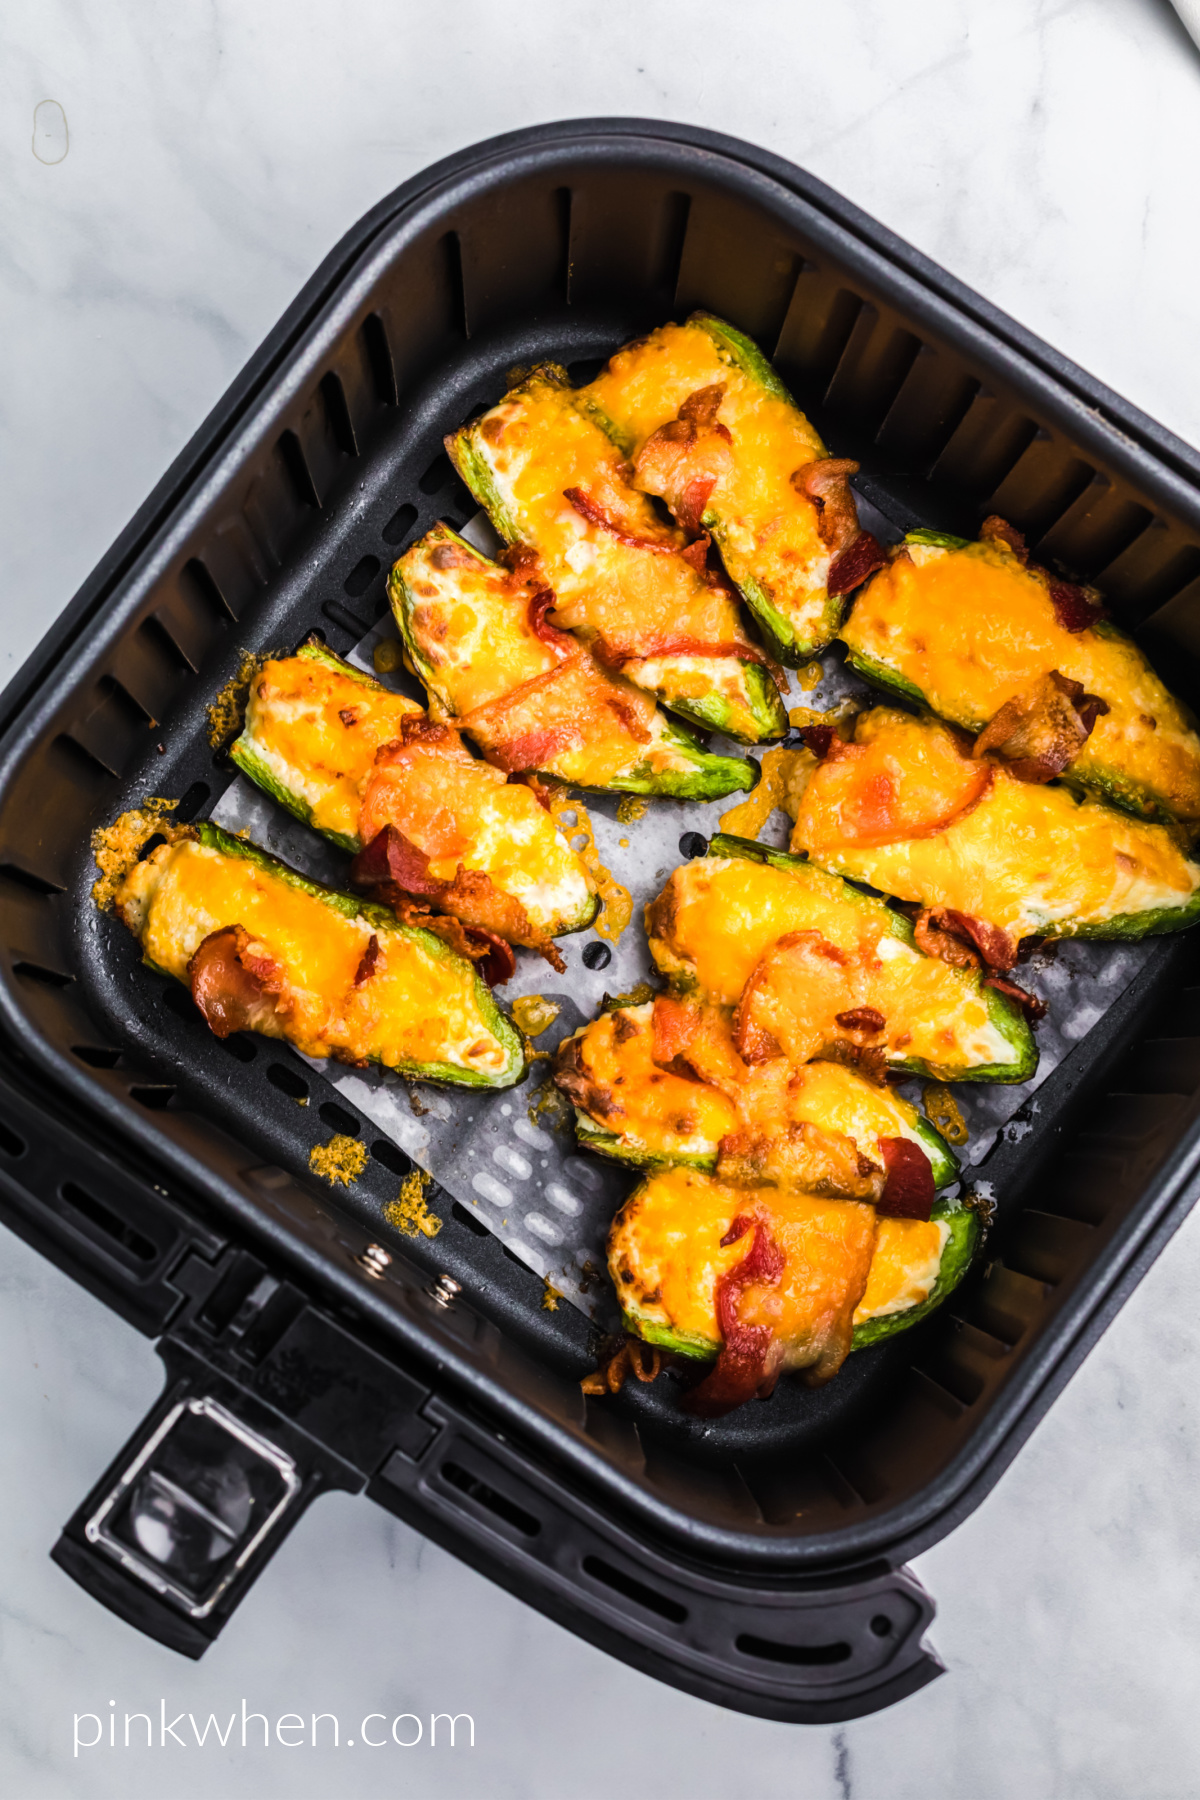 air fried jalapeno poppers in the basket of the air fryer.